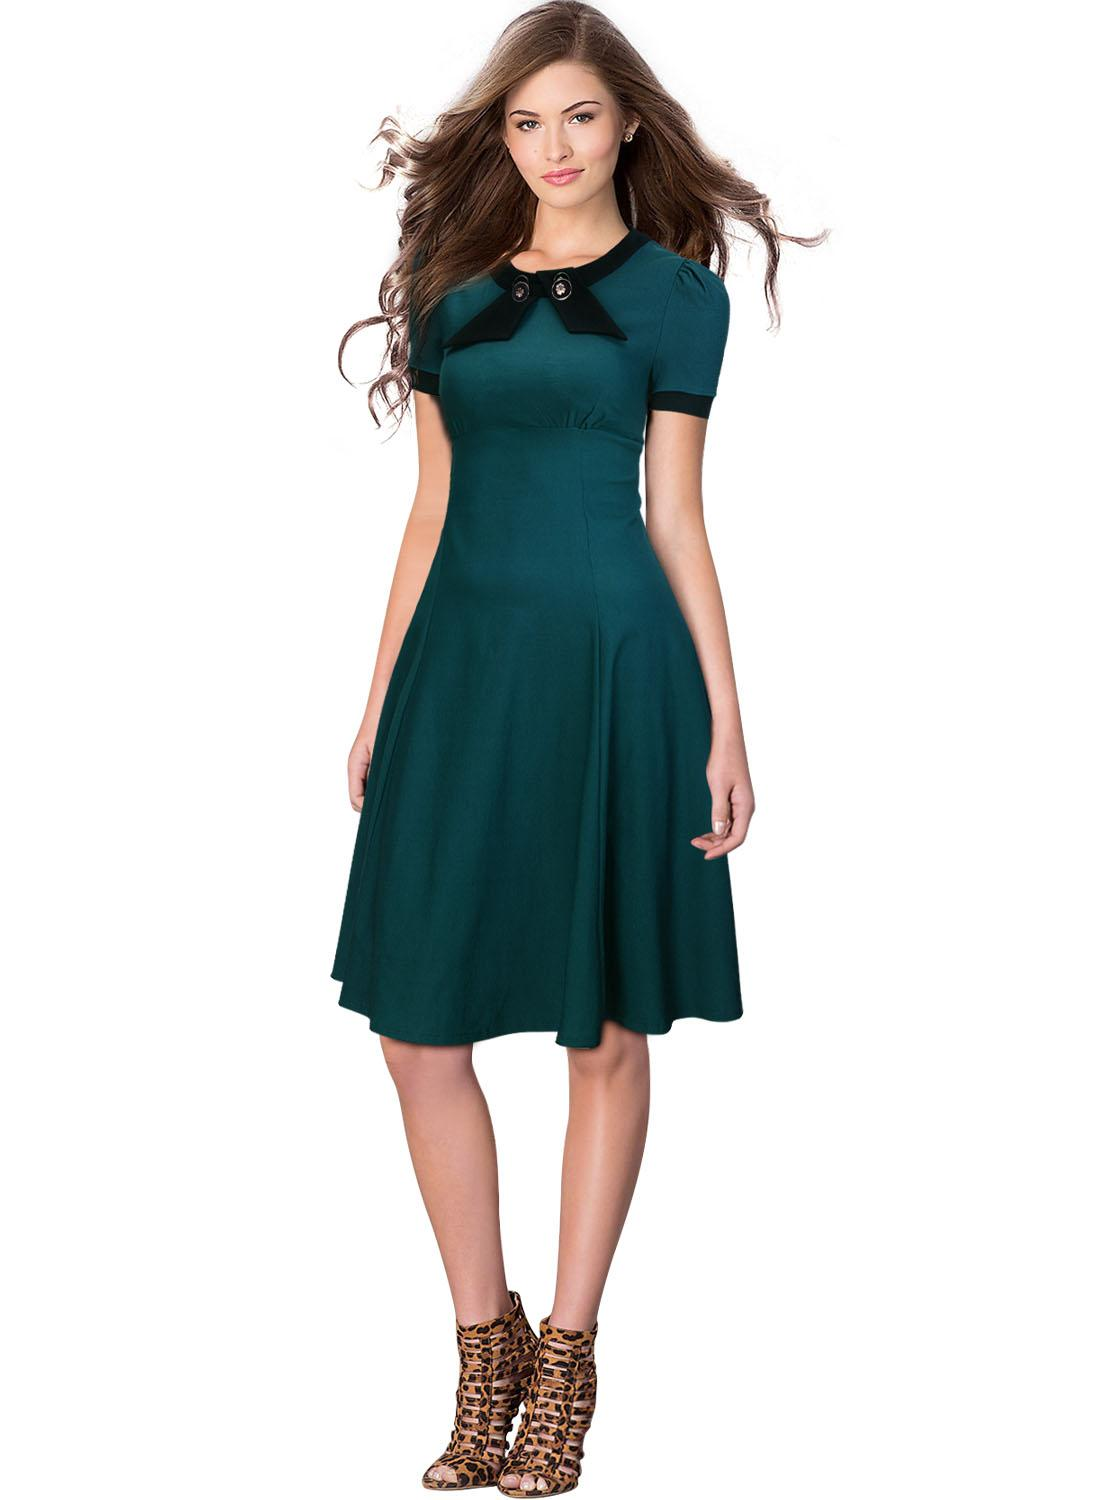 ladies dress ocassions:casual and formal:office ladies wear to work,business wear,work  places,evening party,ball grown,prom,cocktail party,wedding  party,bridesmaid BLPSYIS